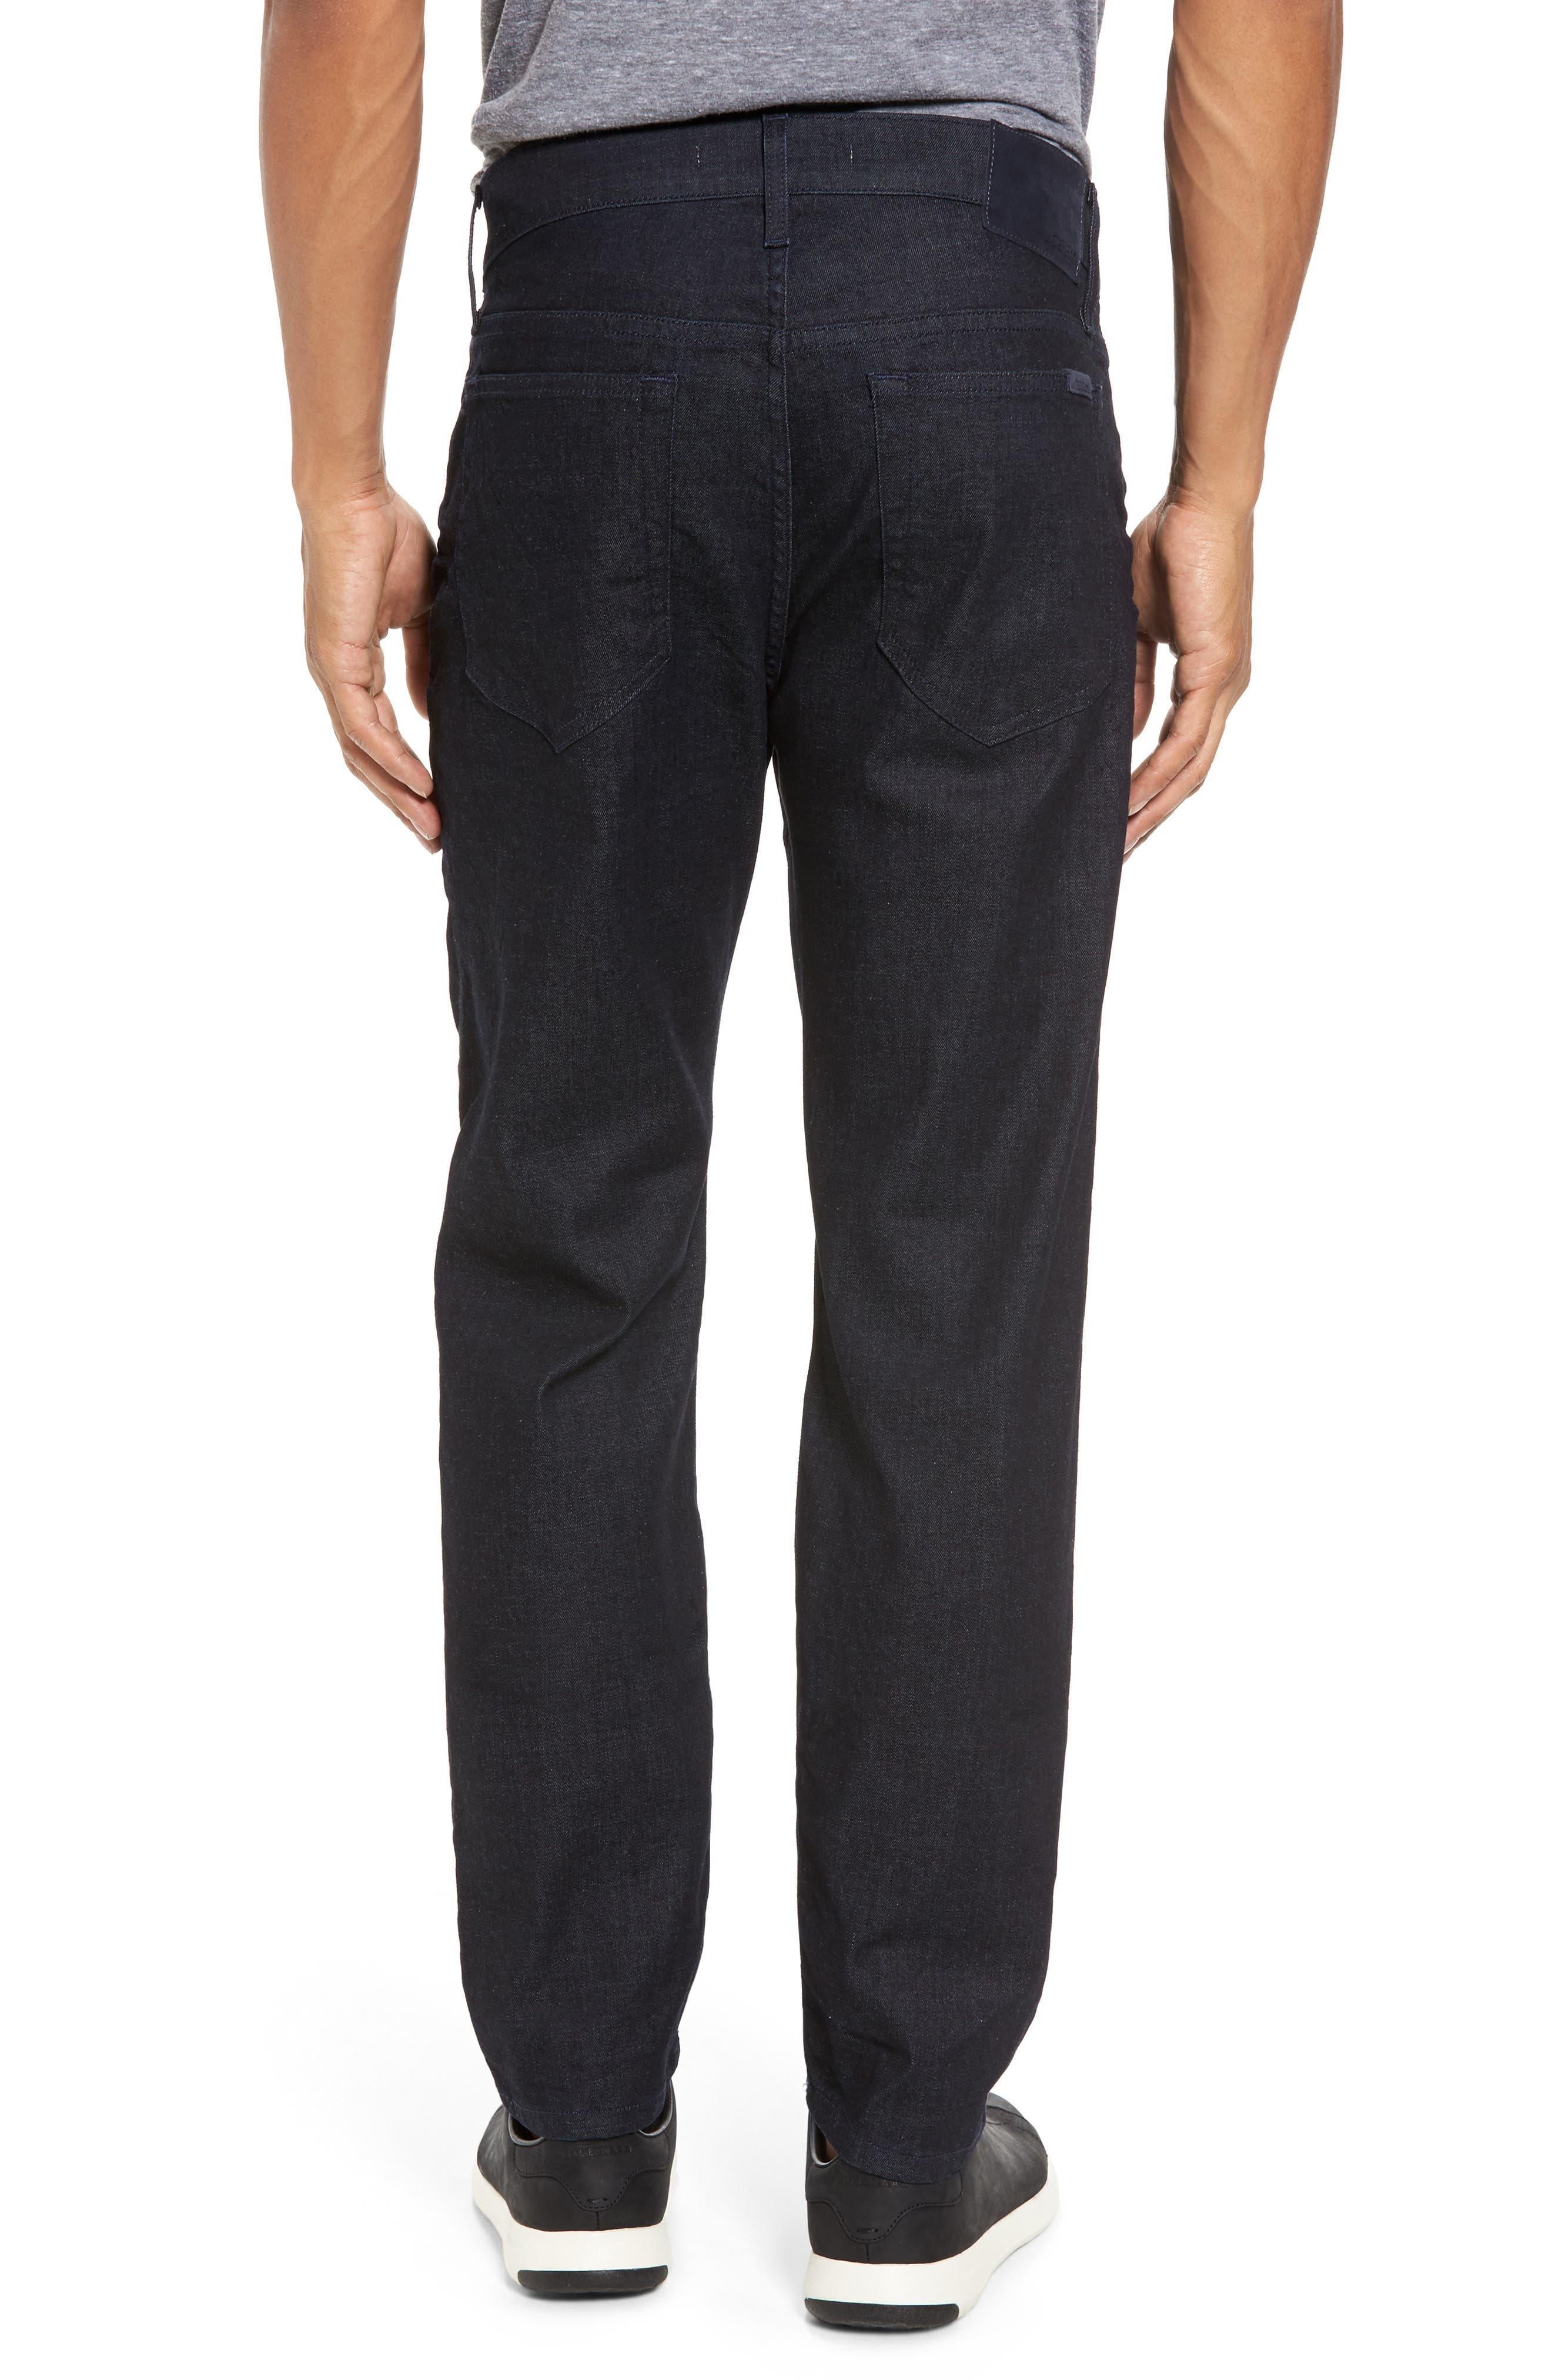 Brixton Slim Straight Fit Jeans,                             Alternate thumbnail 2, color,                             Foster